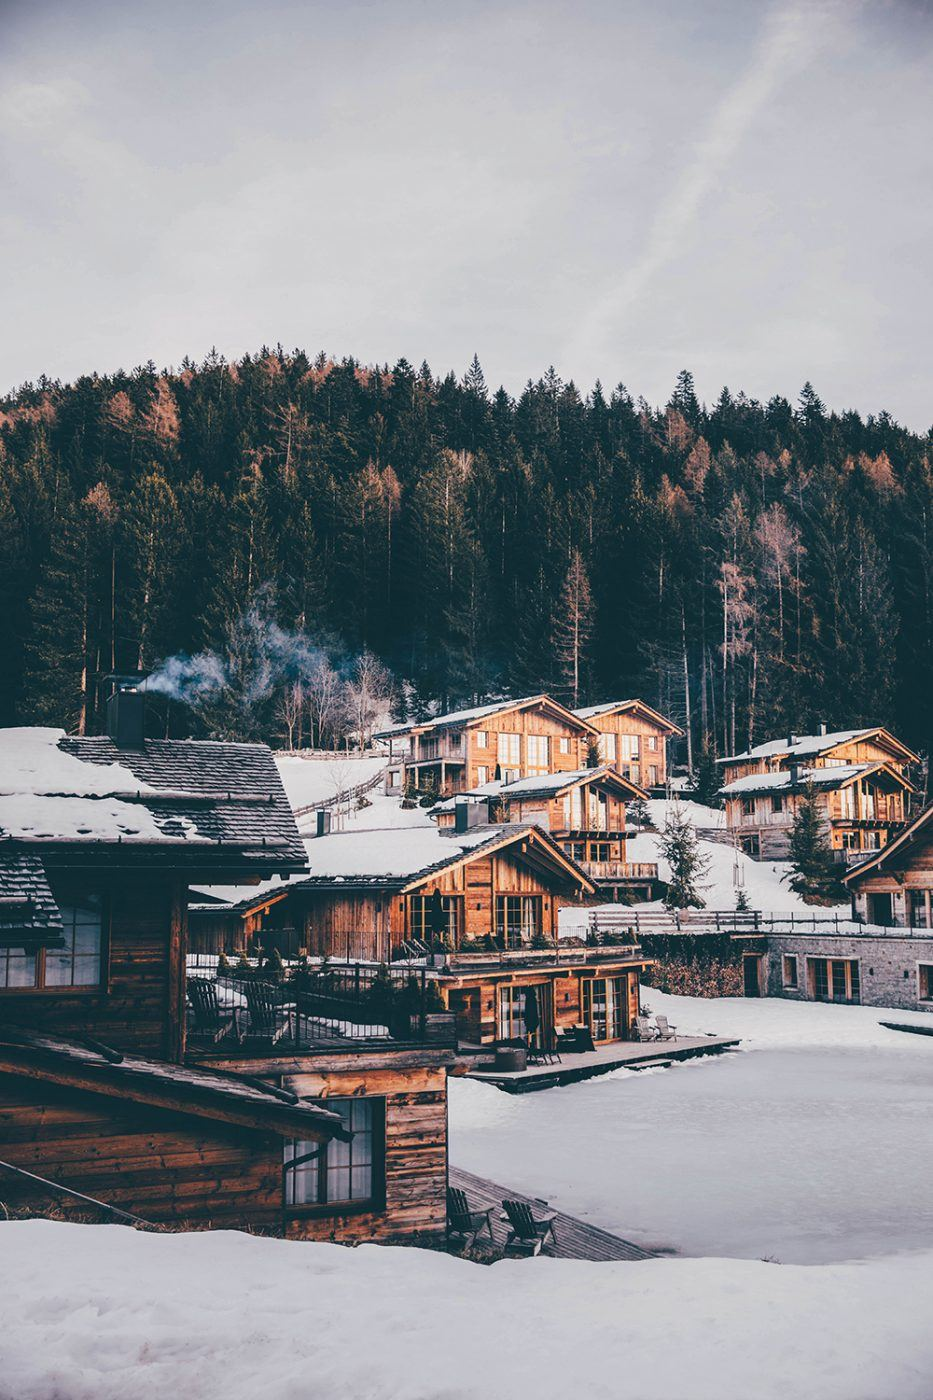 Image for San Luis Lodges during Winter